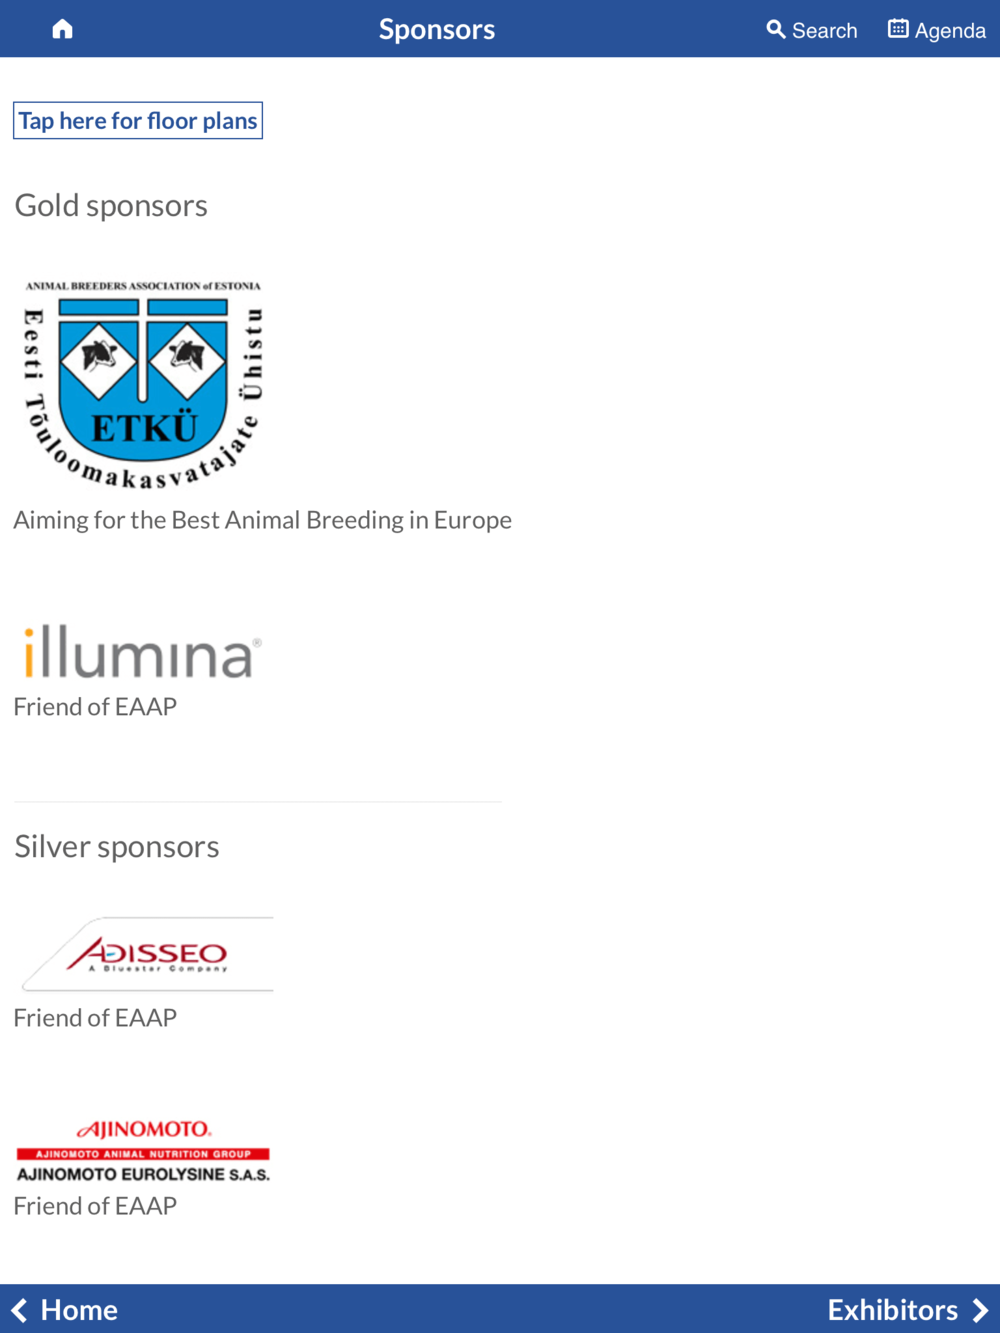 Copy of Sponsors and Exhibitors